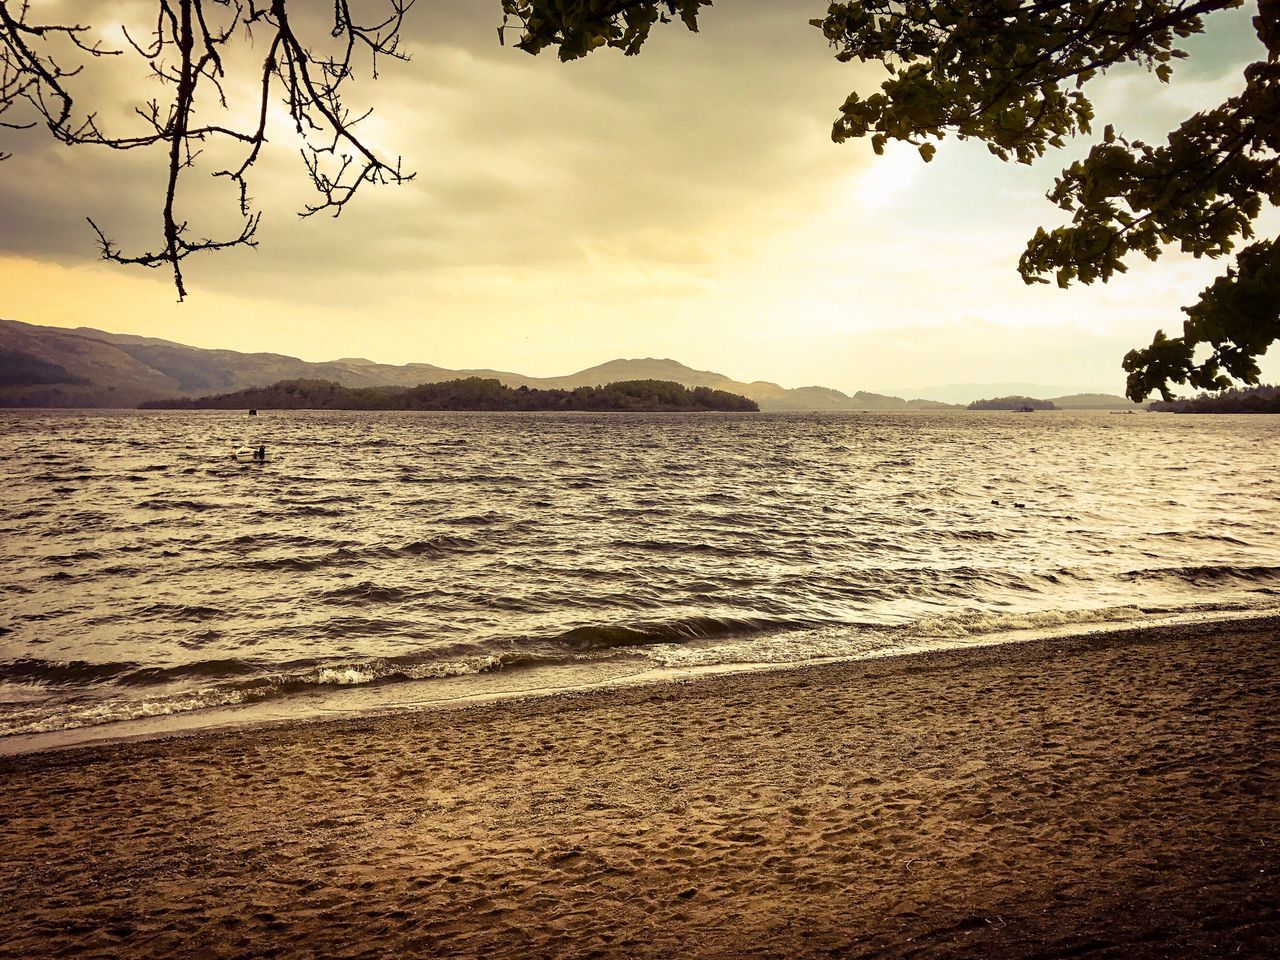 LochLomond Loch  Scenics Nature Beauty In Nature Tranquility Sky Tranquil Scene Sea Water Sand Beach No People Mountain Outdoors Sunset Tree Day